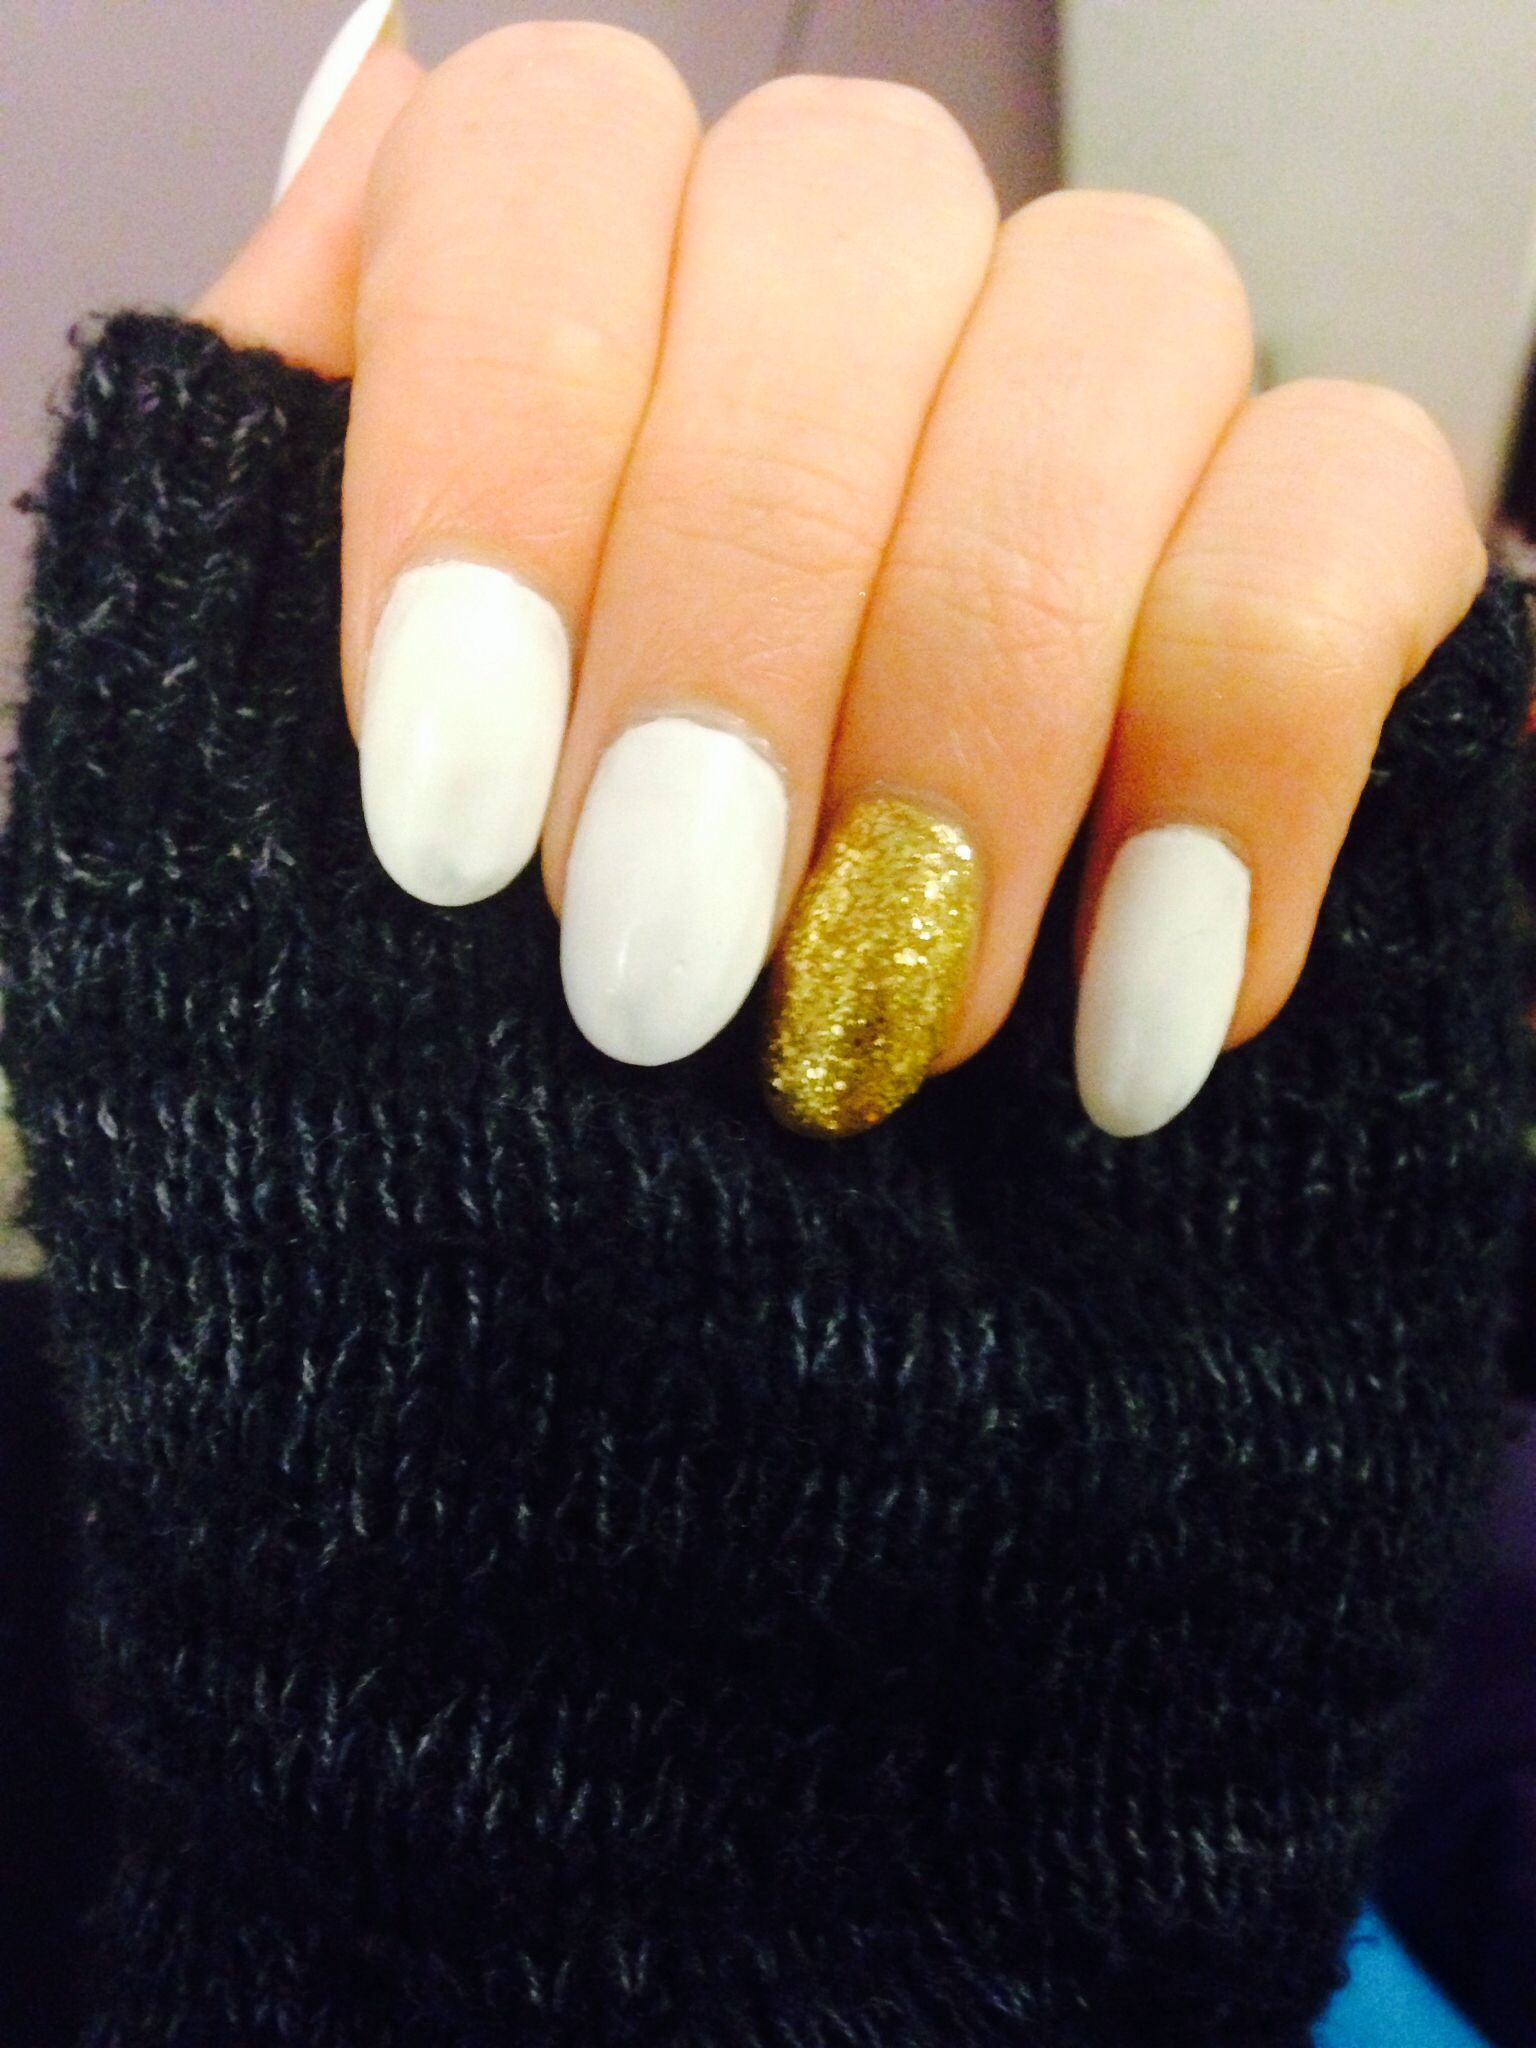 Almond shaped acrylic nails gold and white | Nails | Pinterest